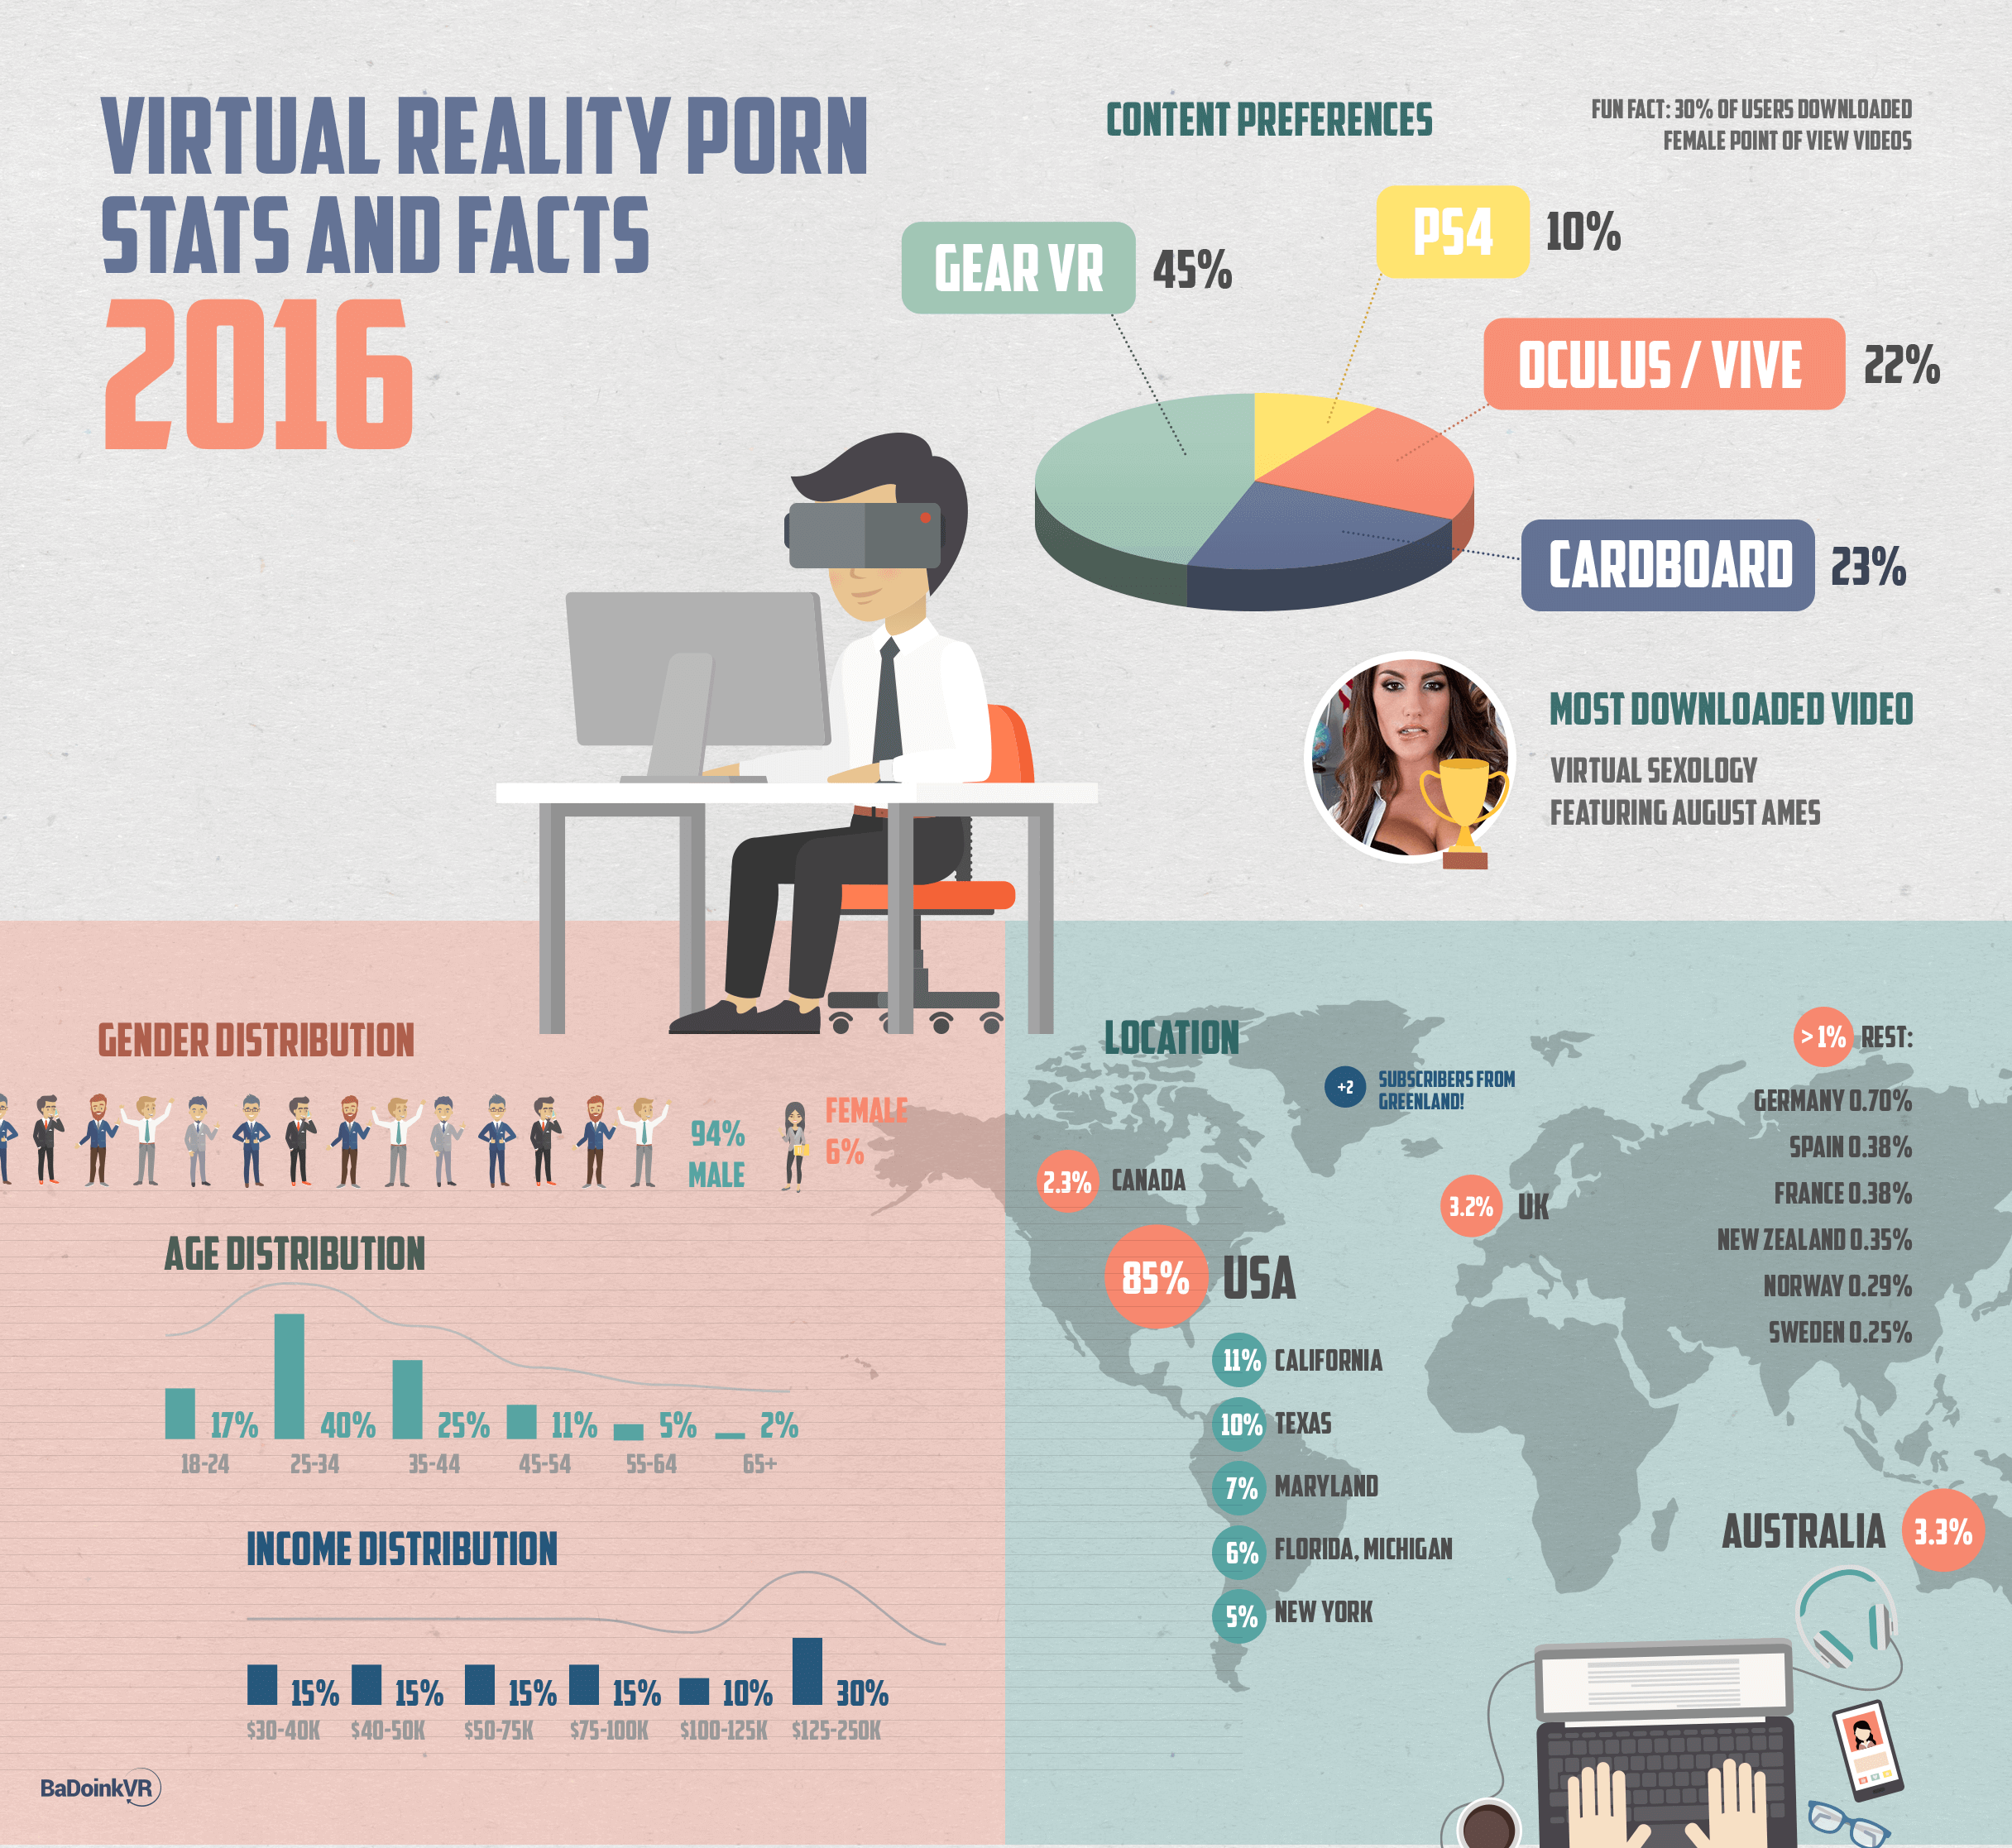 BaDoinkVR has released interesting facts and figures about VR porn viewership.